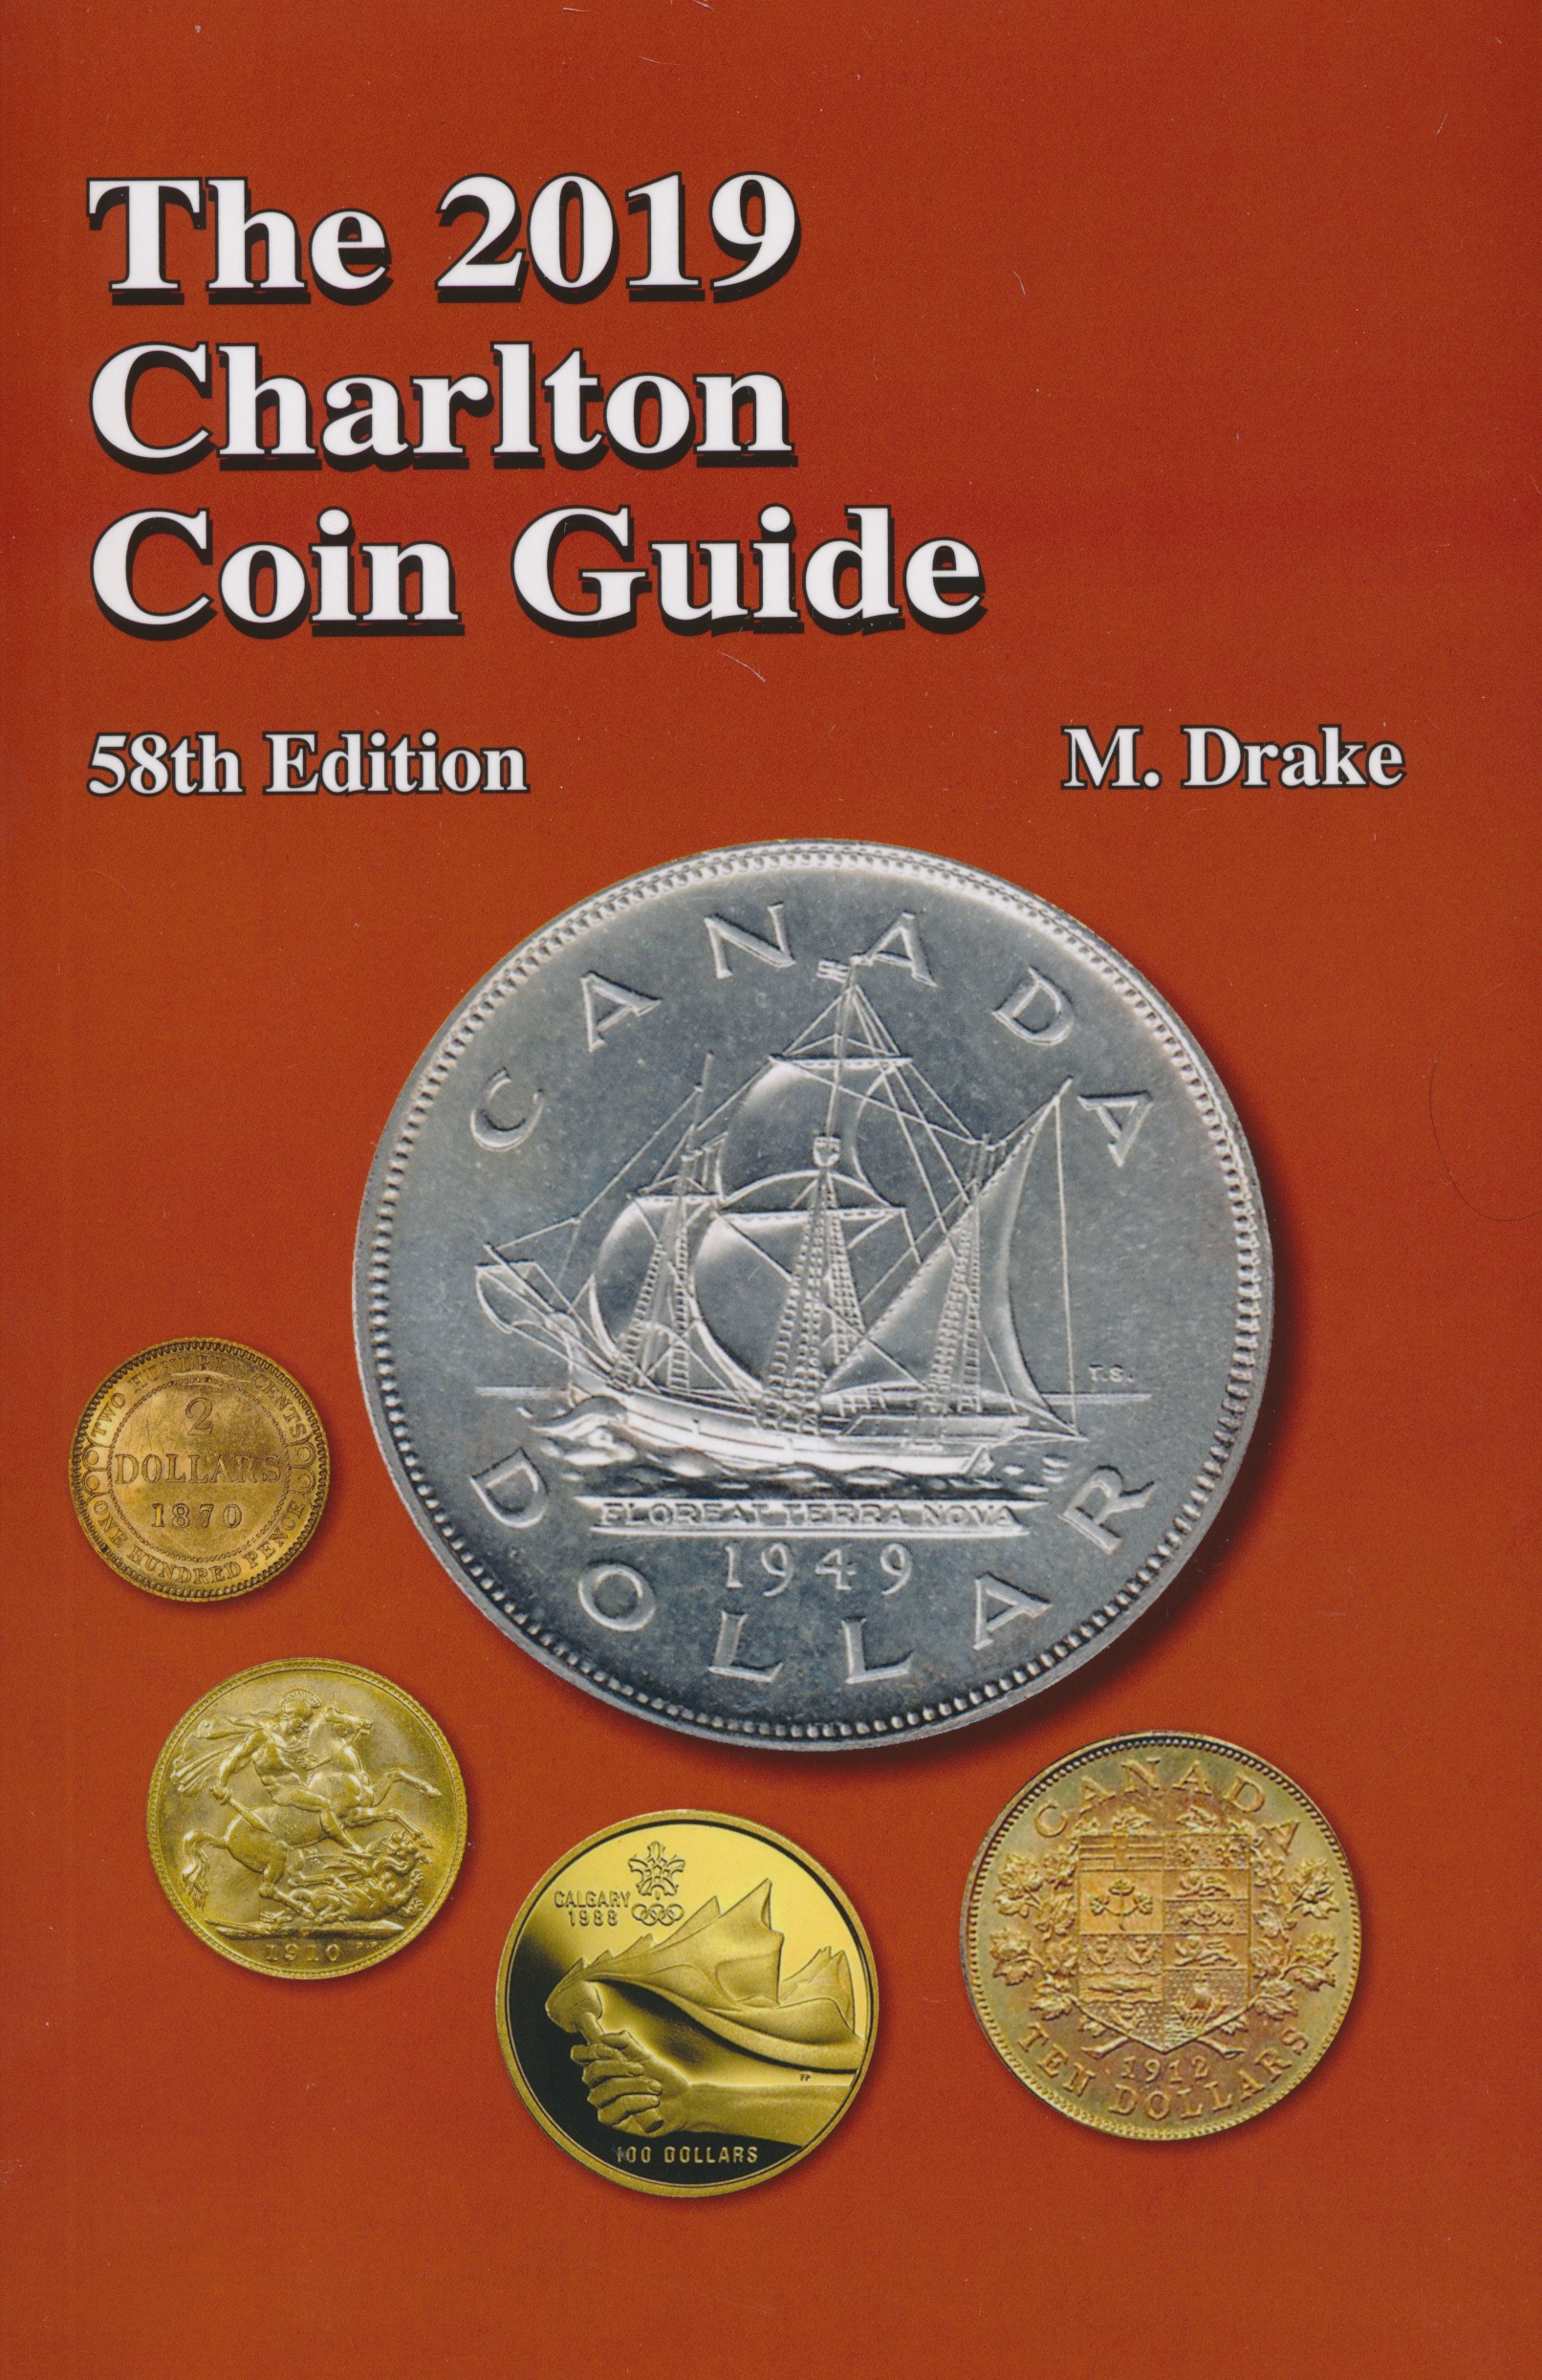 The 2019 Charlton Coin Guide – 58th Edition